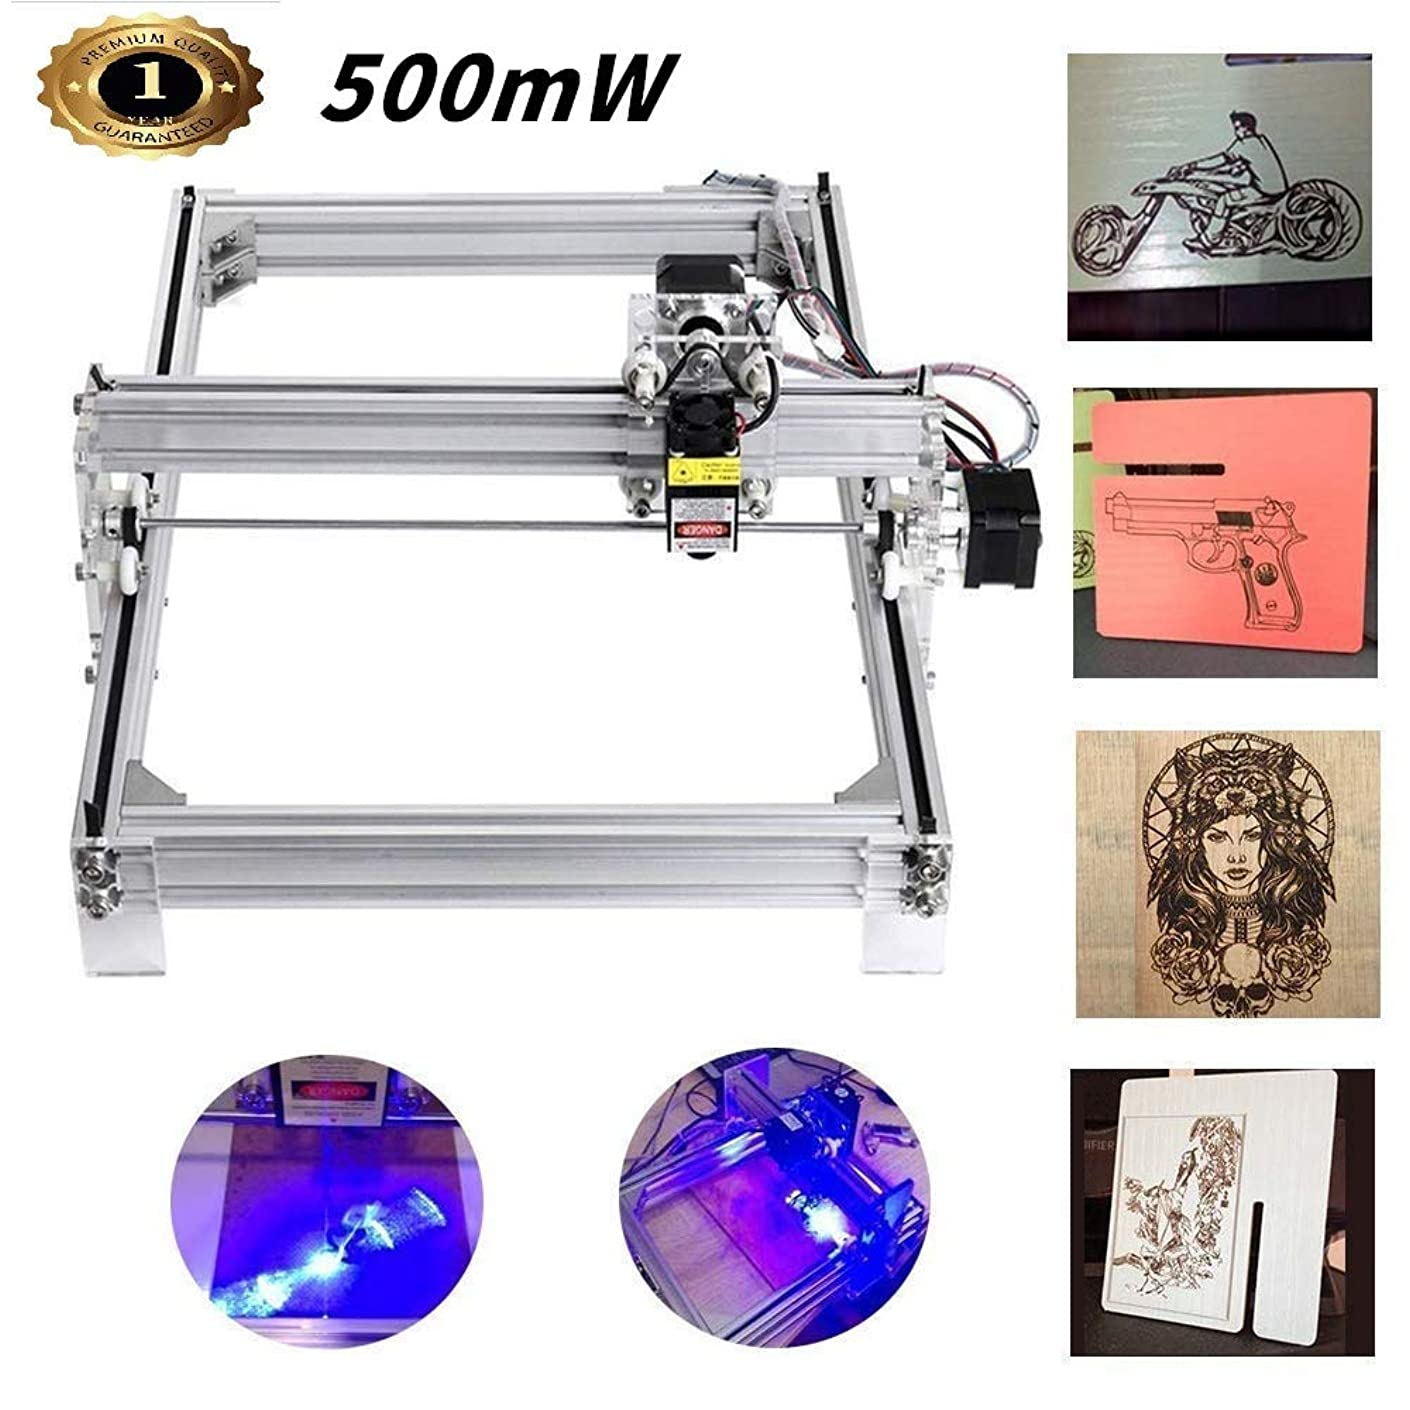 500mw Laser CNC Engraving Machine, DIY 4030CNC Machine Precison 0.1mm with USB Interface, Carving Machine for Leather Wood Plastic (3040cm/500mw)